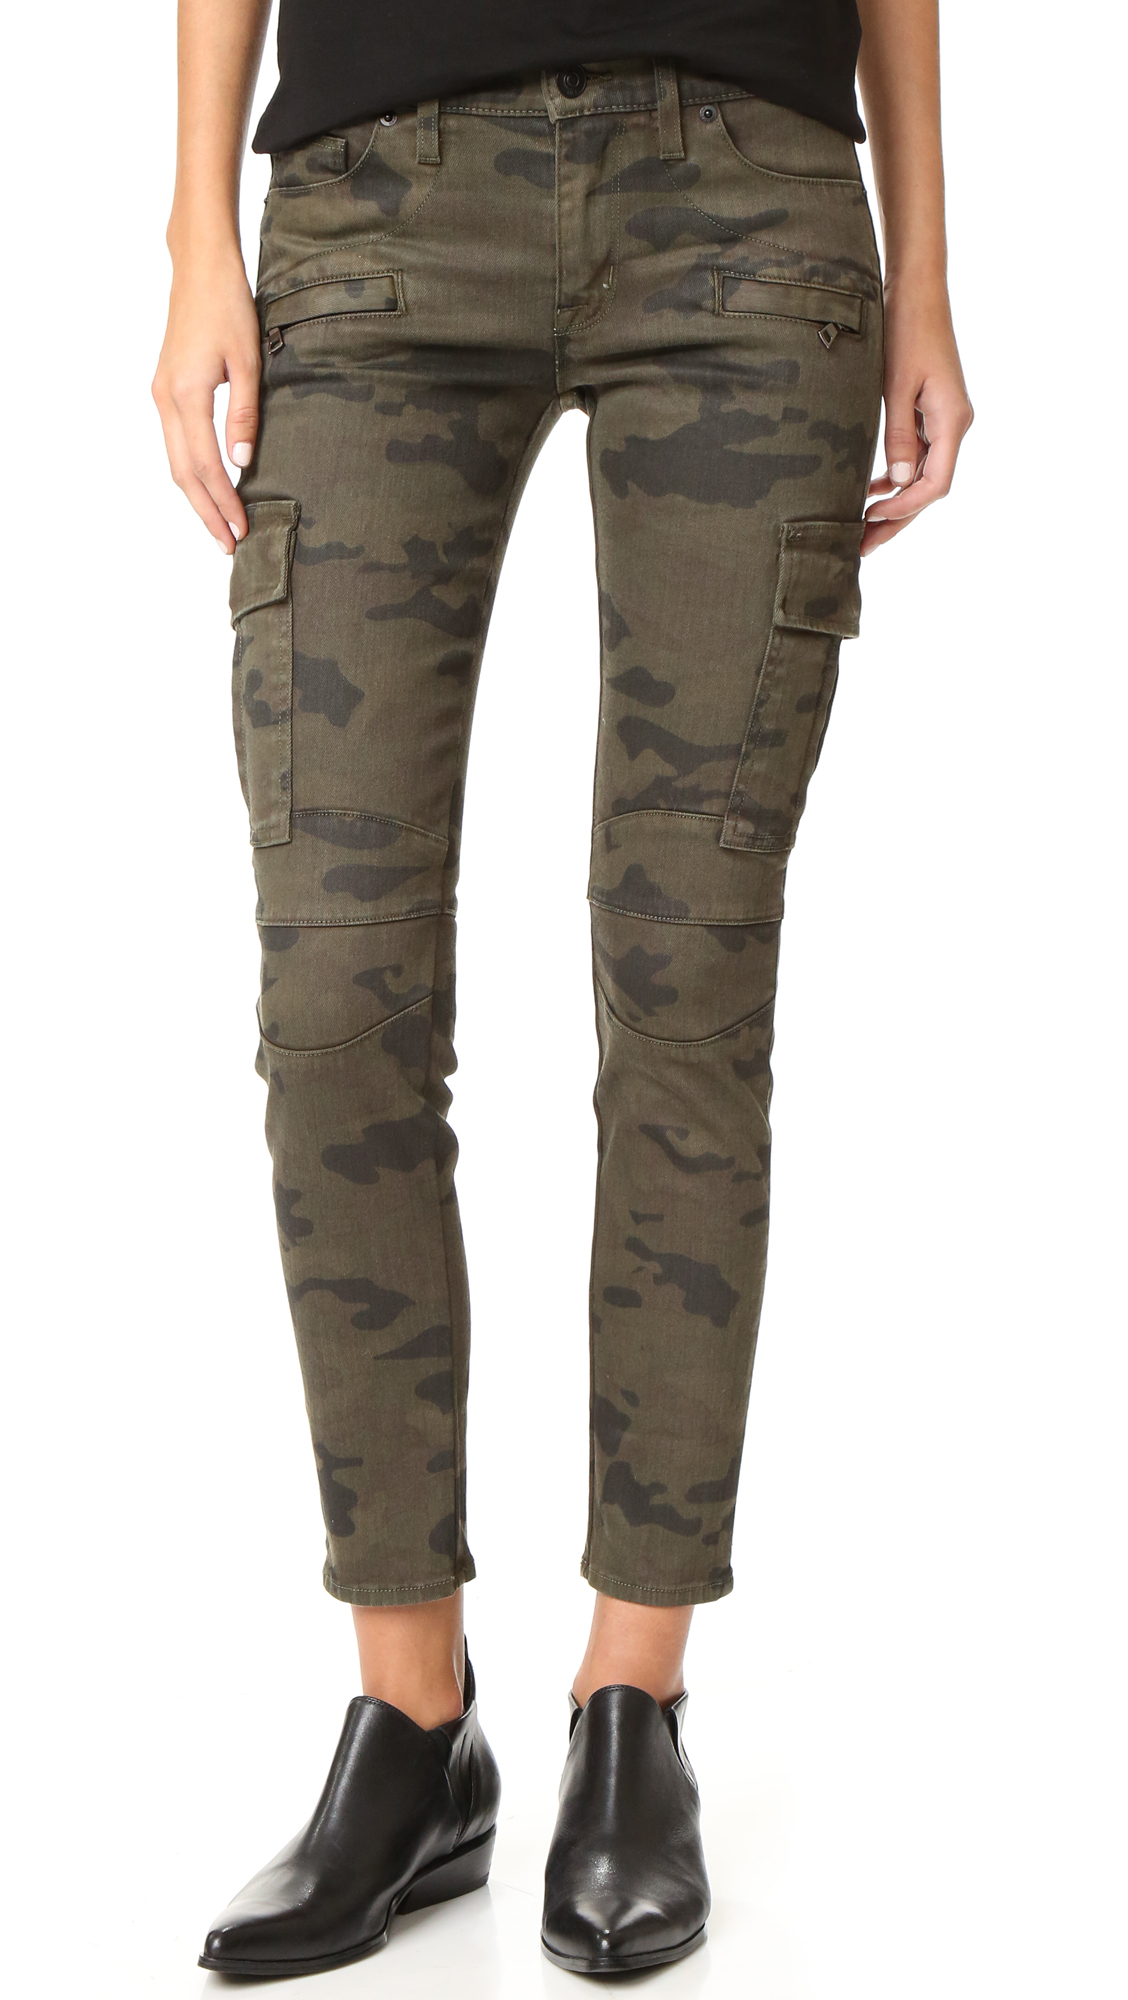 Hudson Colby Ankle Moto Skinny Cargo Jeans - Rustic Camo at Shopbop